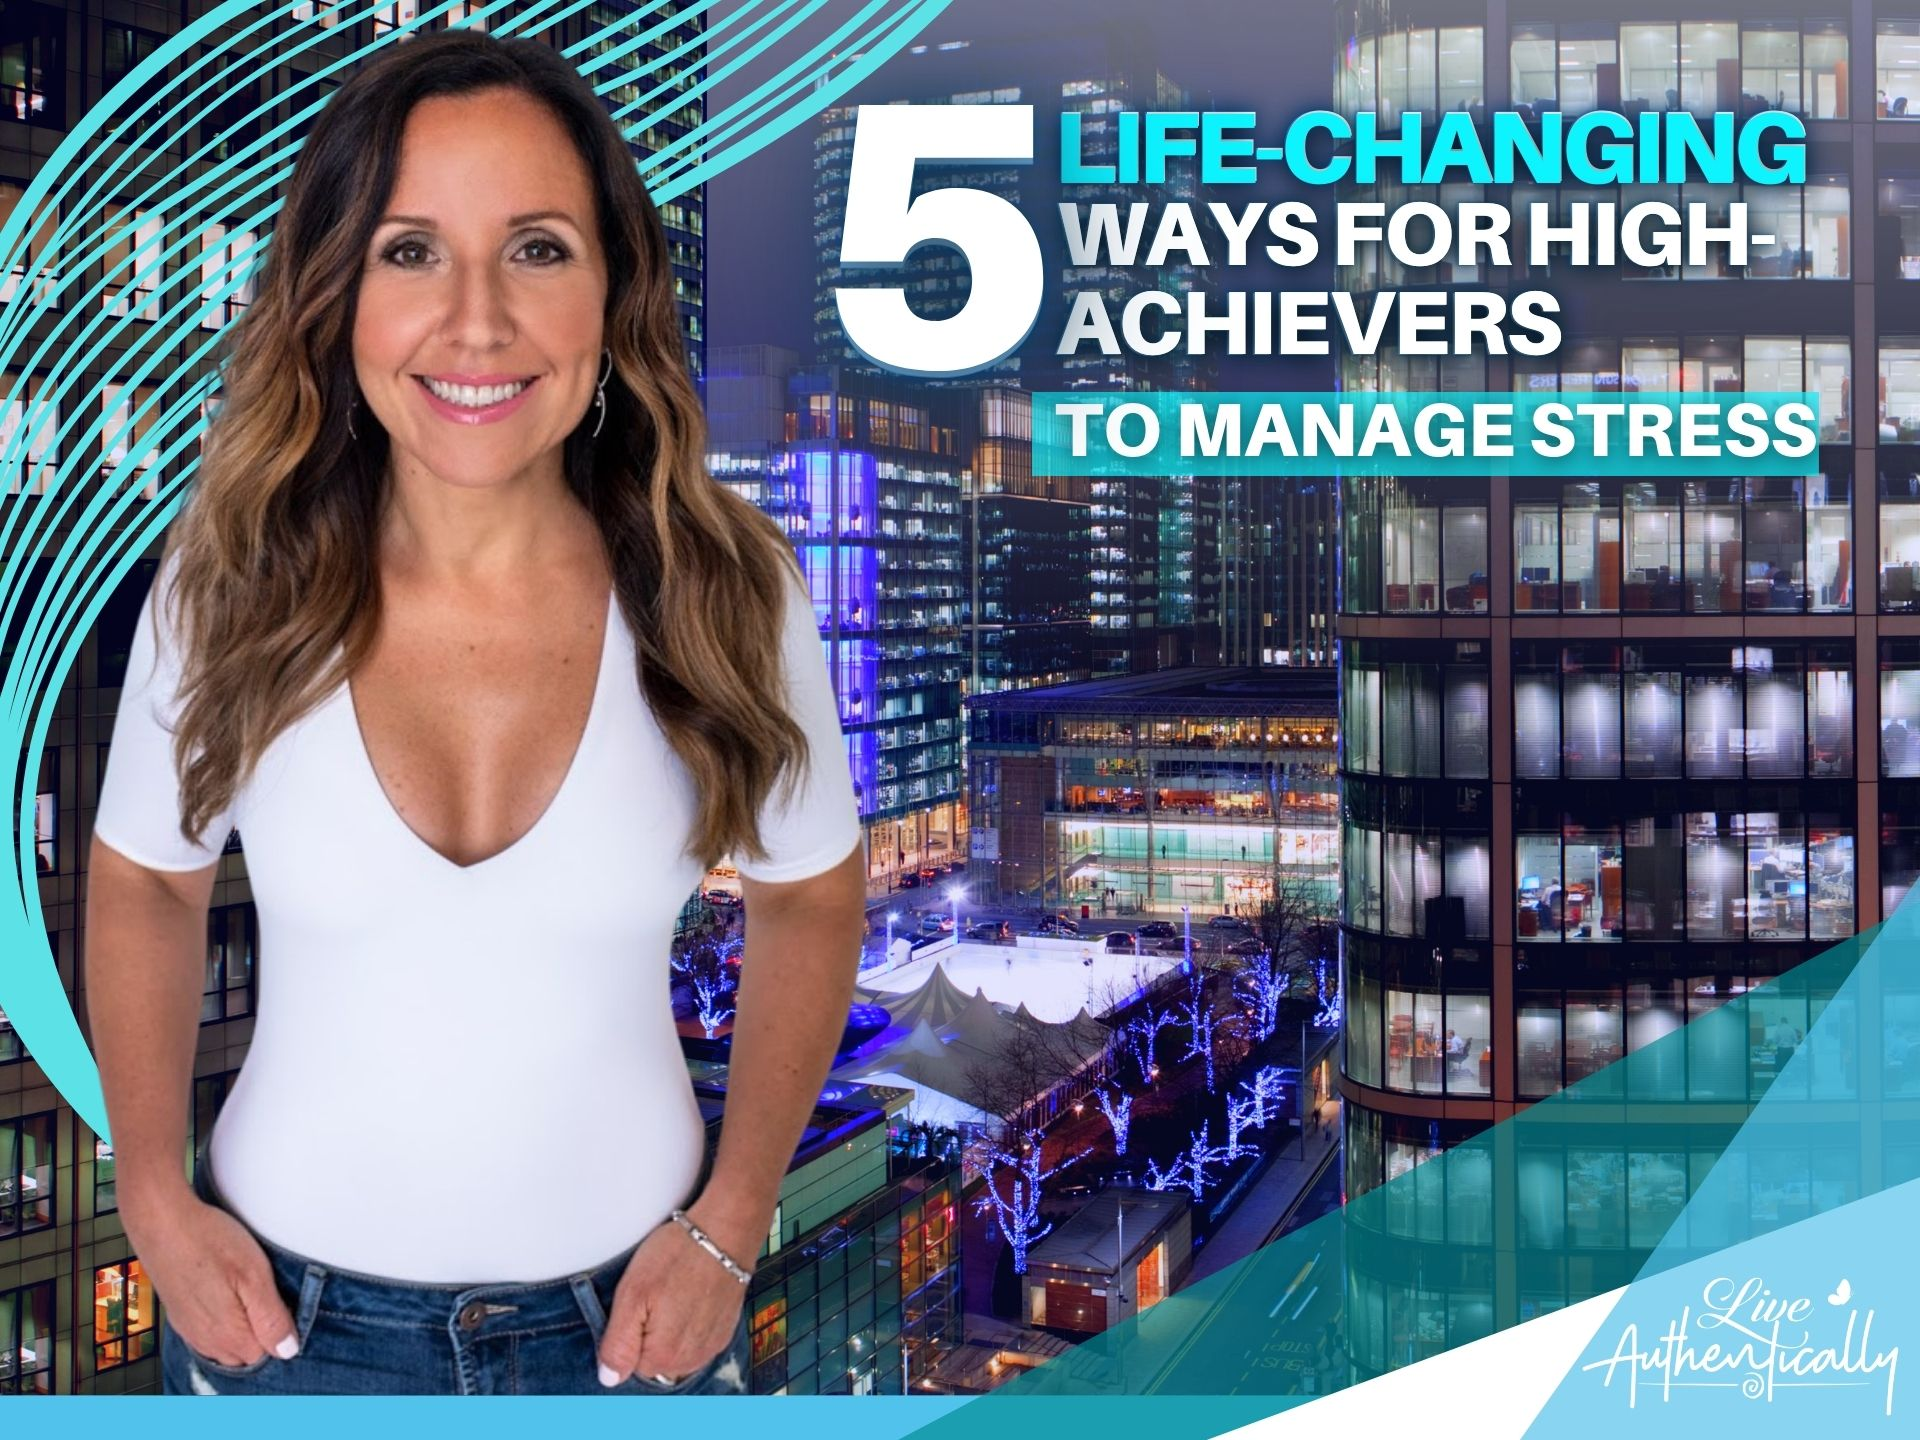 5 Life-Changing Ways for High-Achievers to Manage Stress